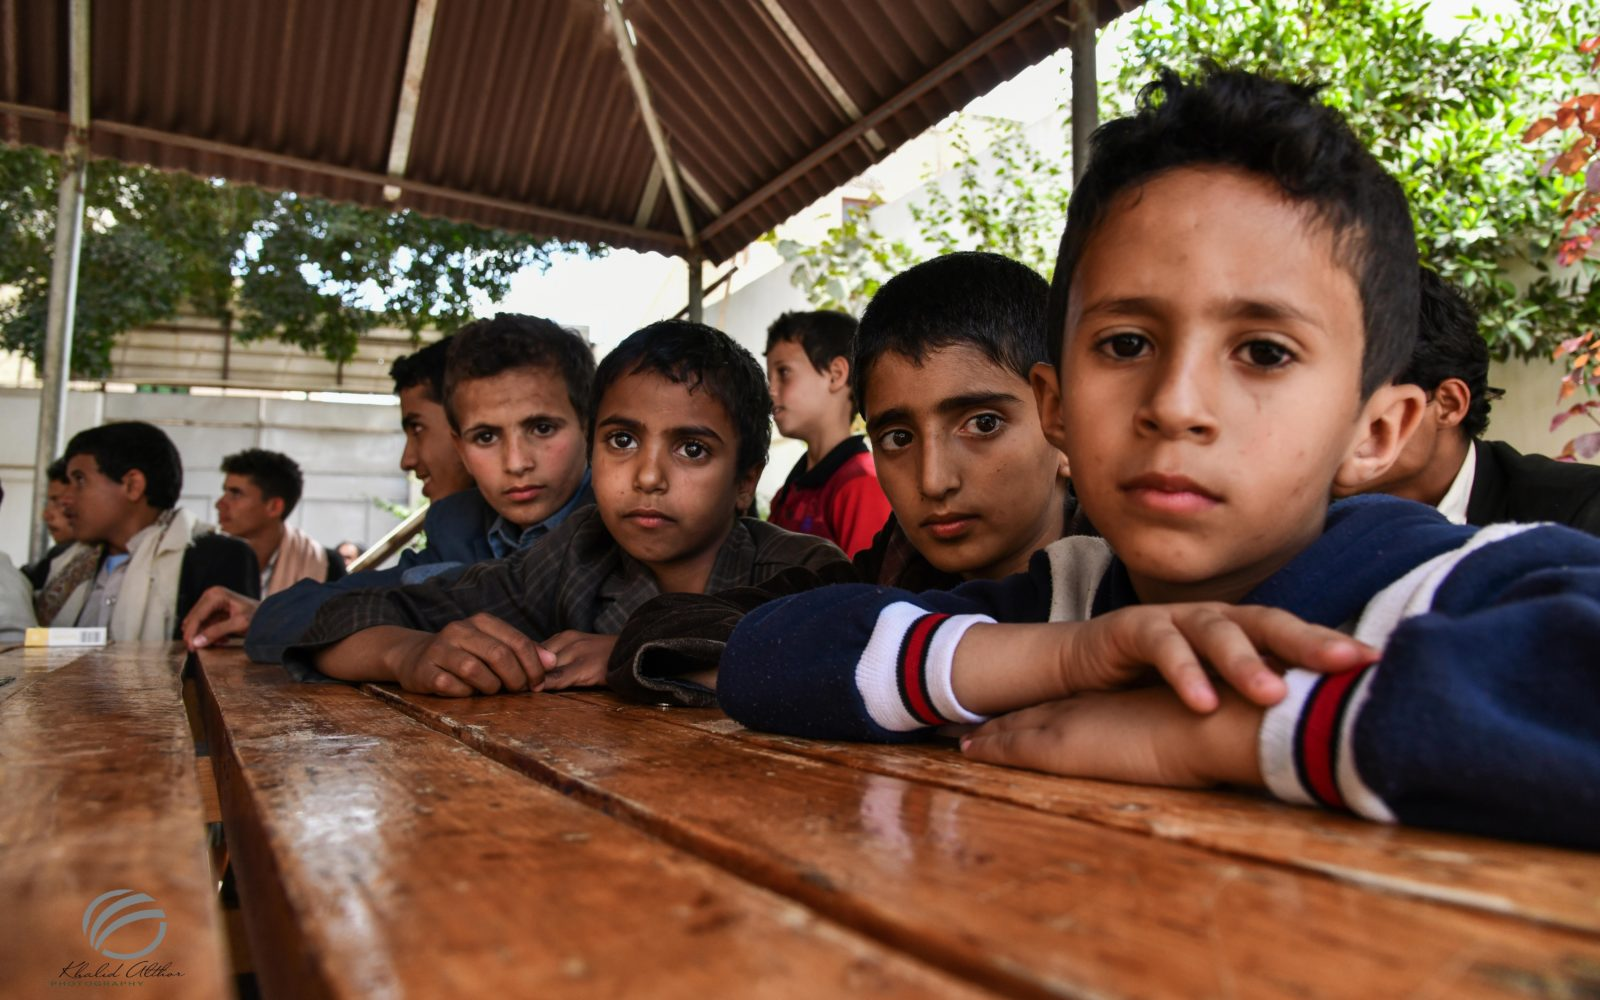 Give a future in Yemen: Learning and living in an orphanage